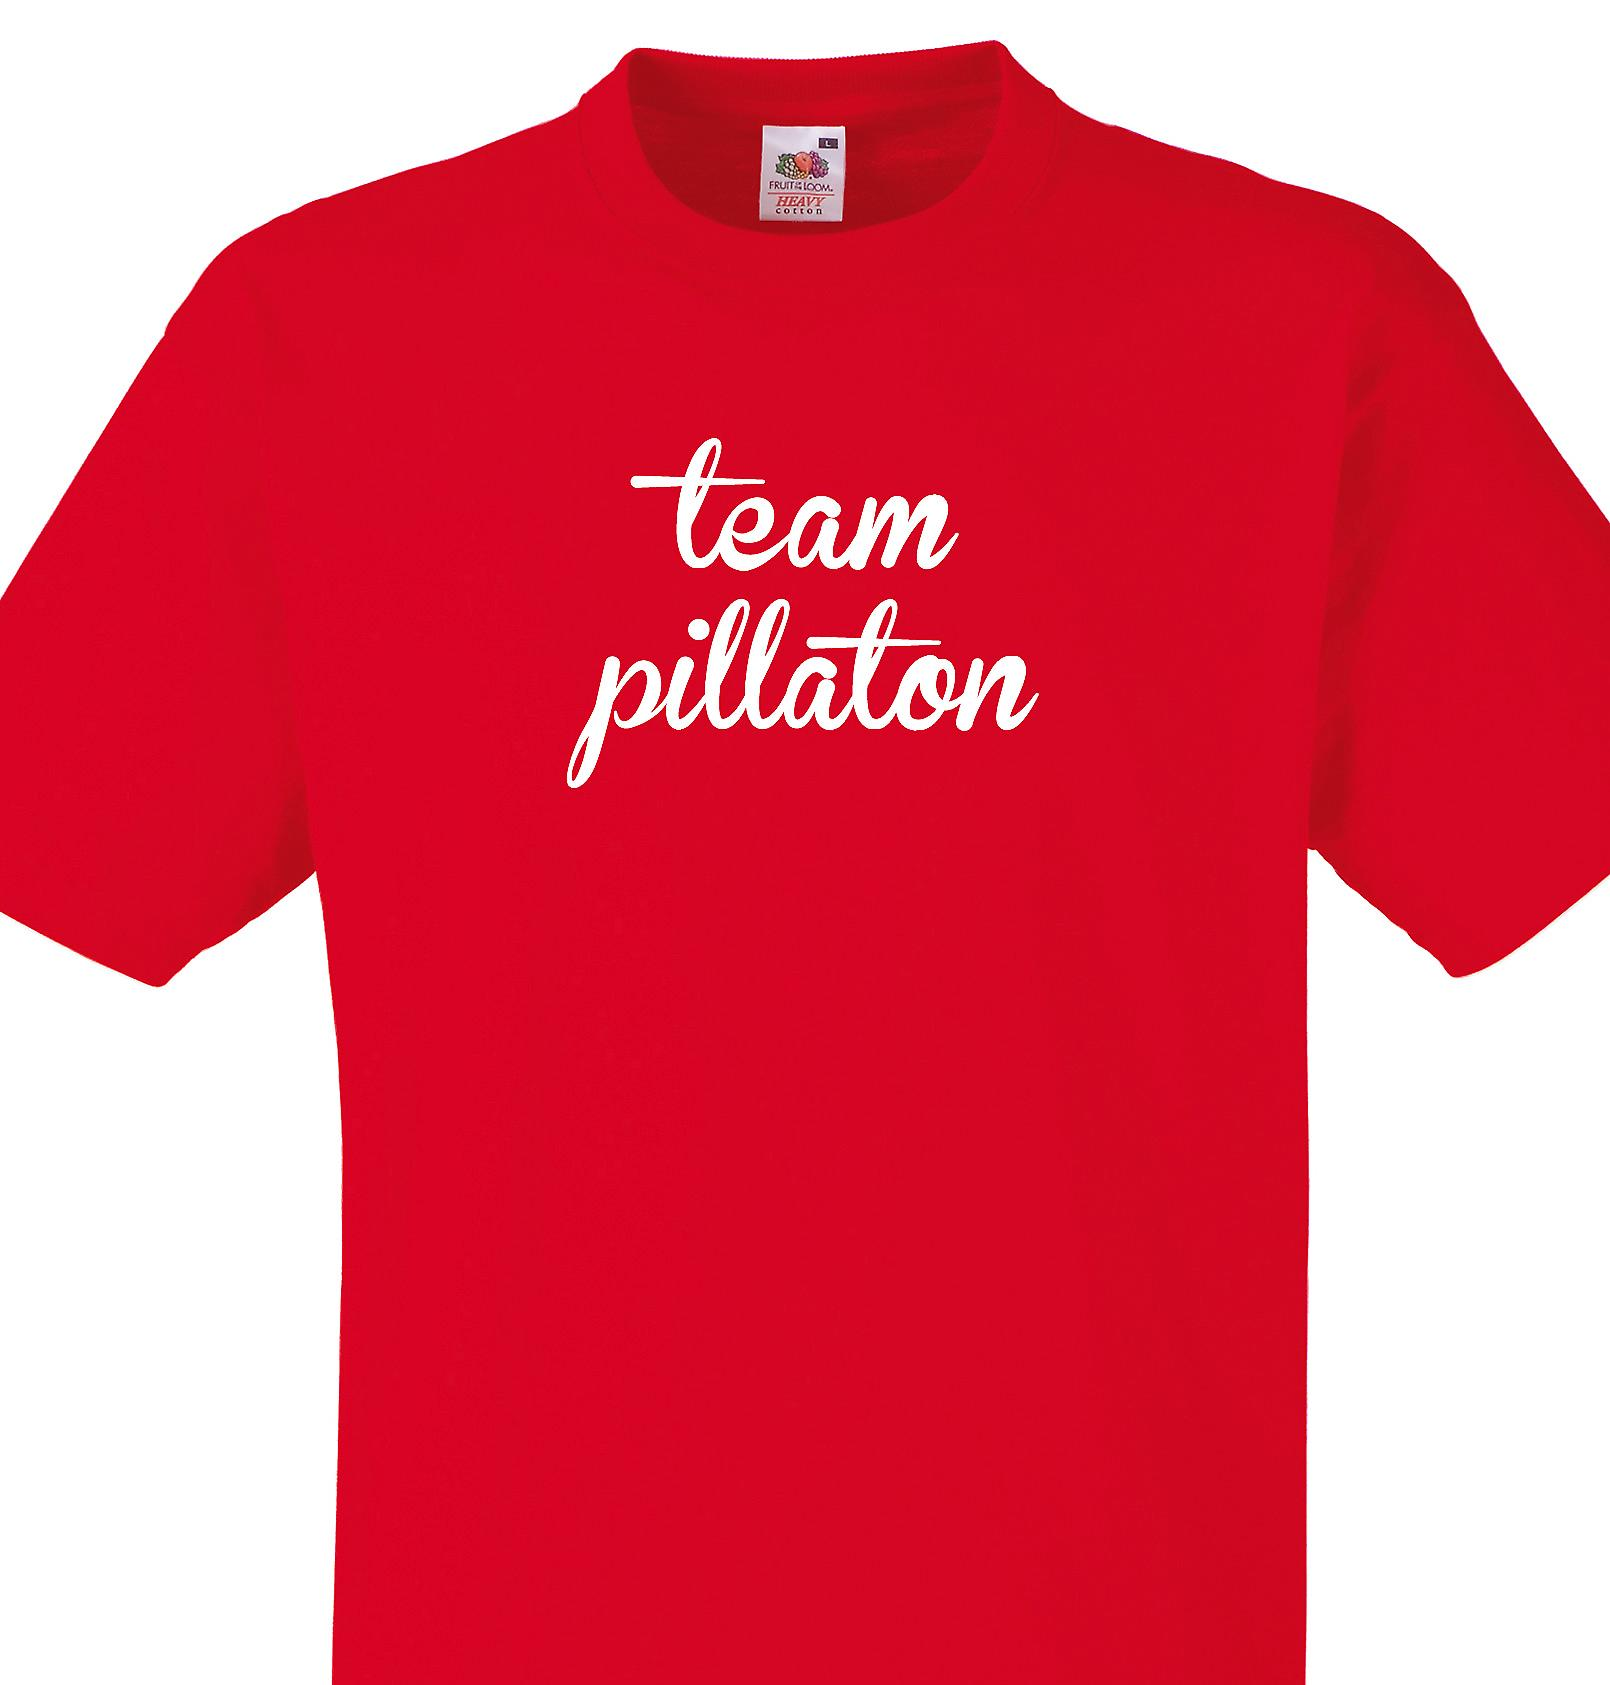 Team Pillaton Red T shirt